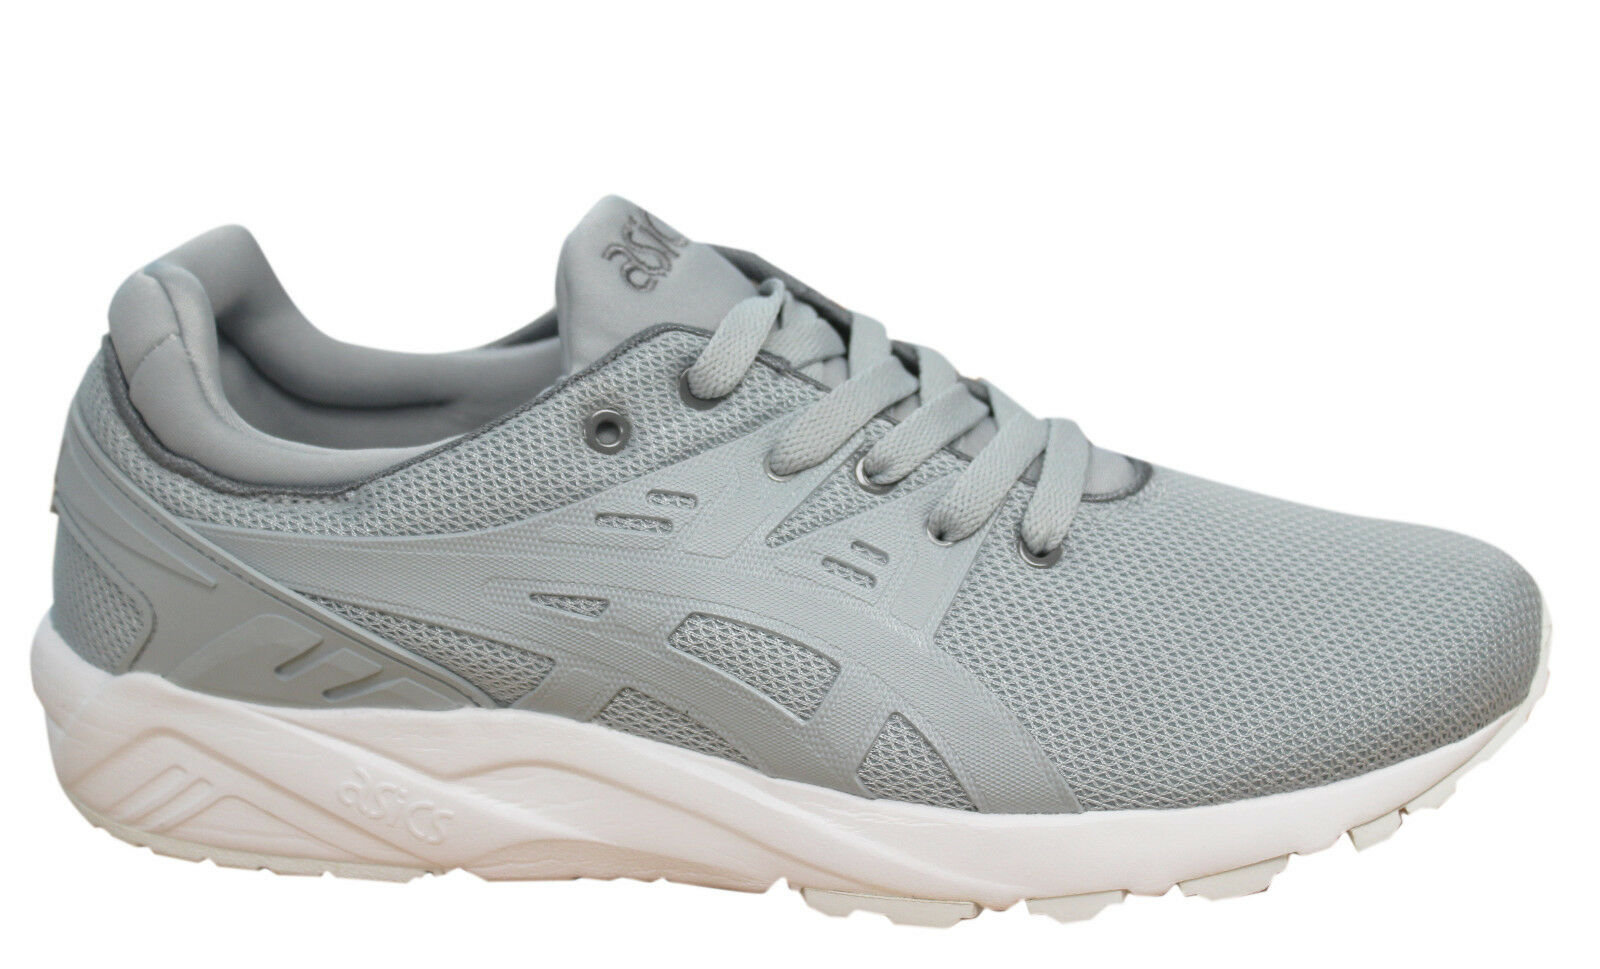 Details about Asics Gel Kayano Evo Mens Lace Up Trainers Casual Shoes Olive H707N 8686 B43E